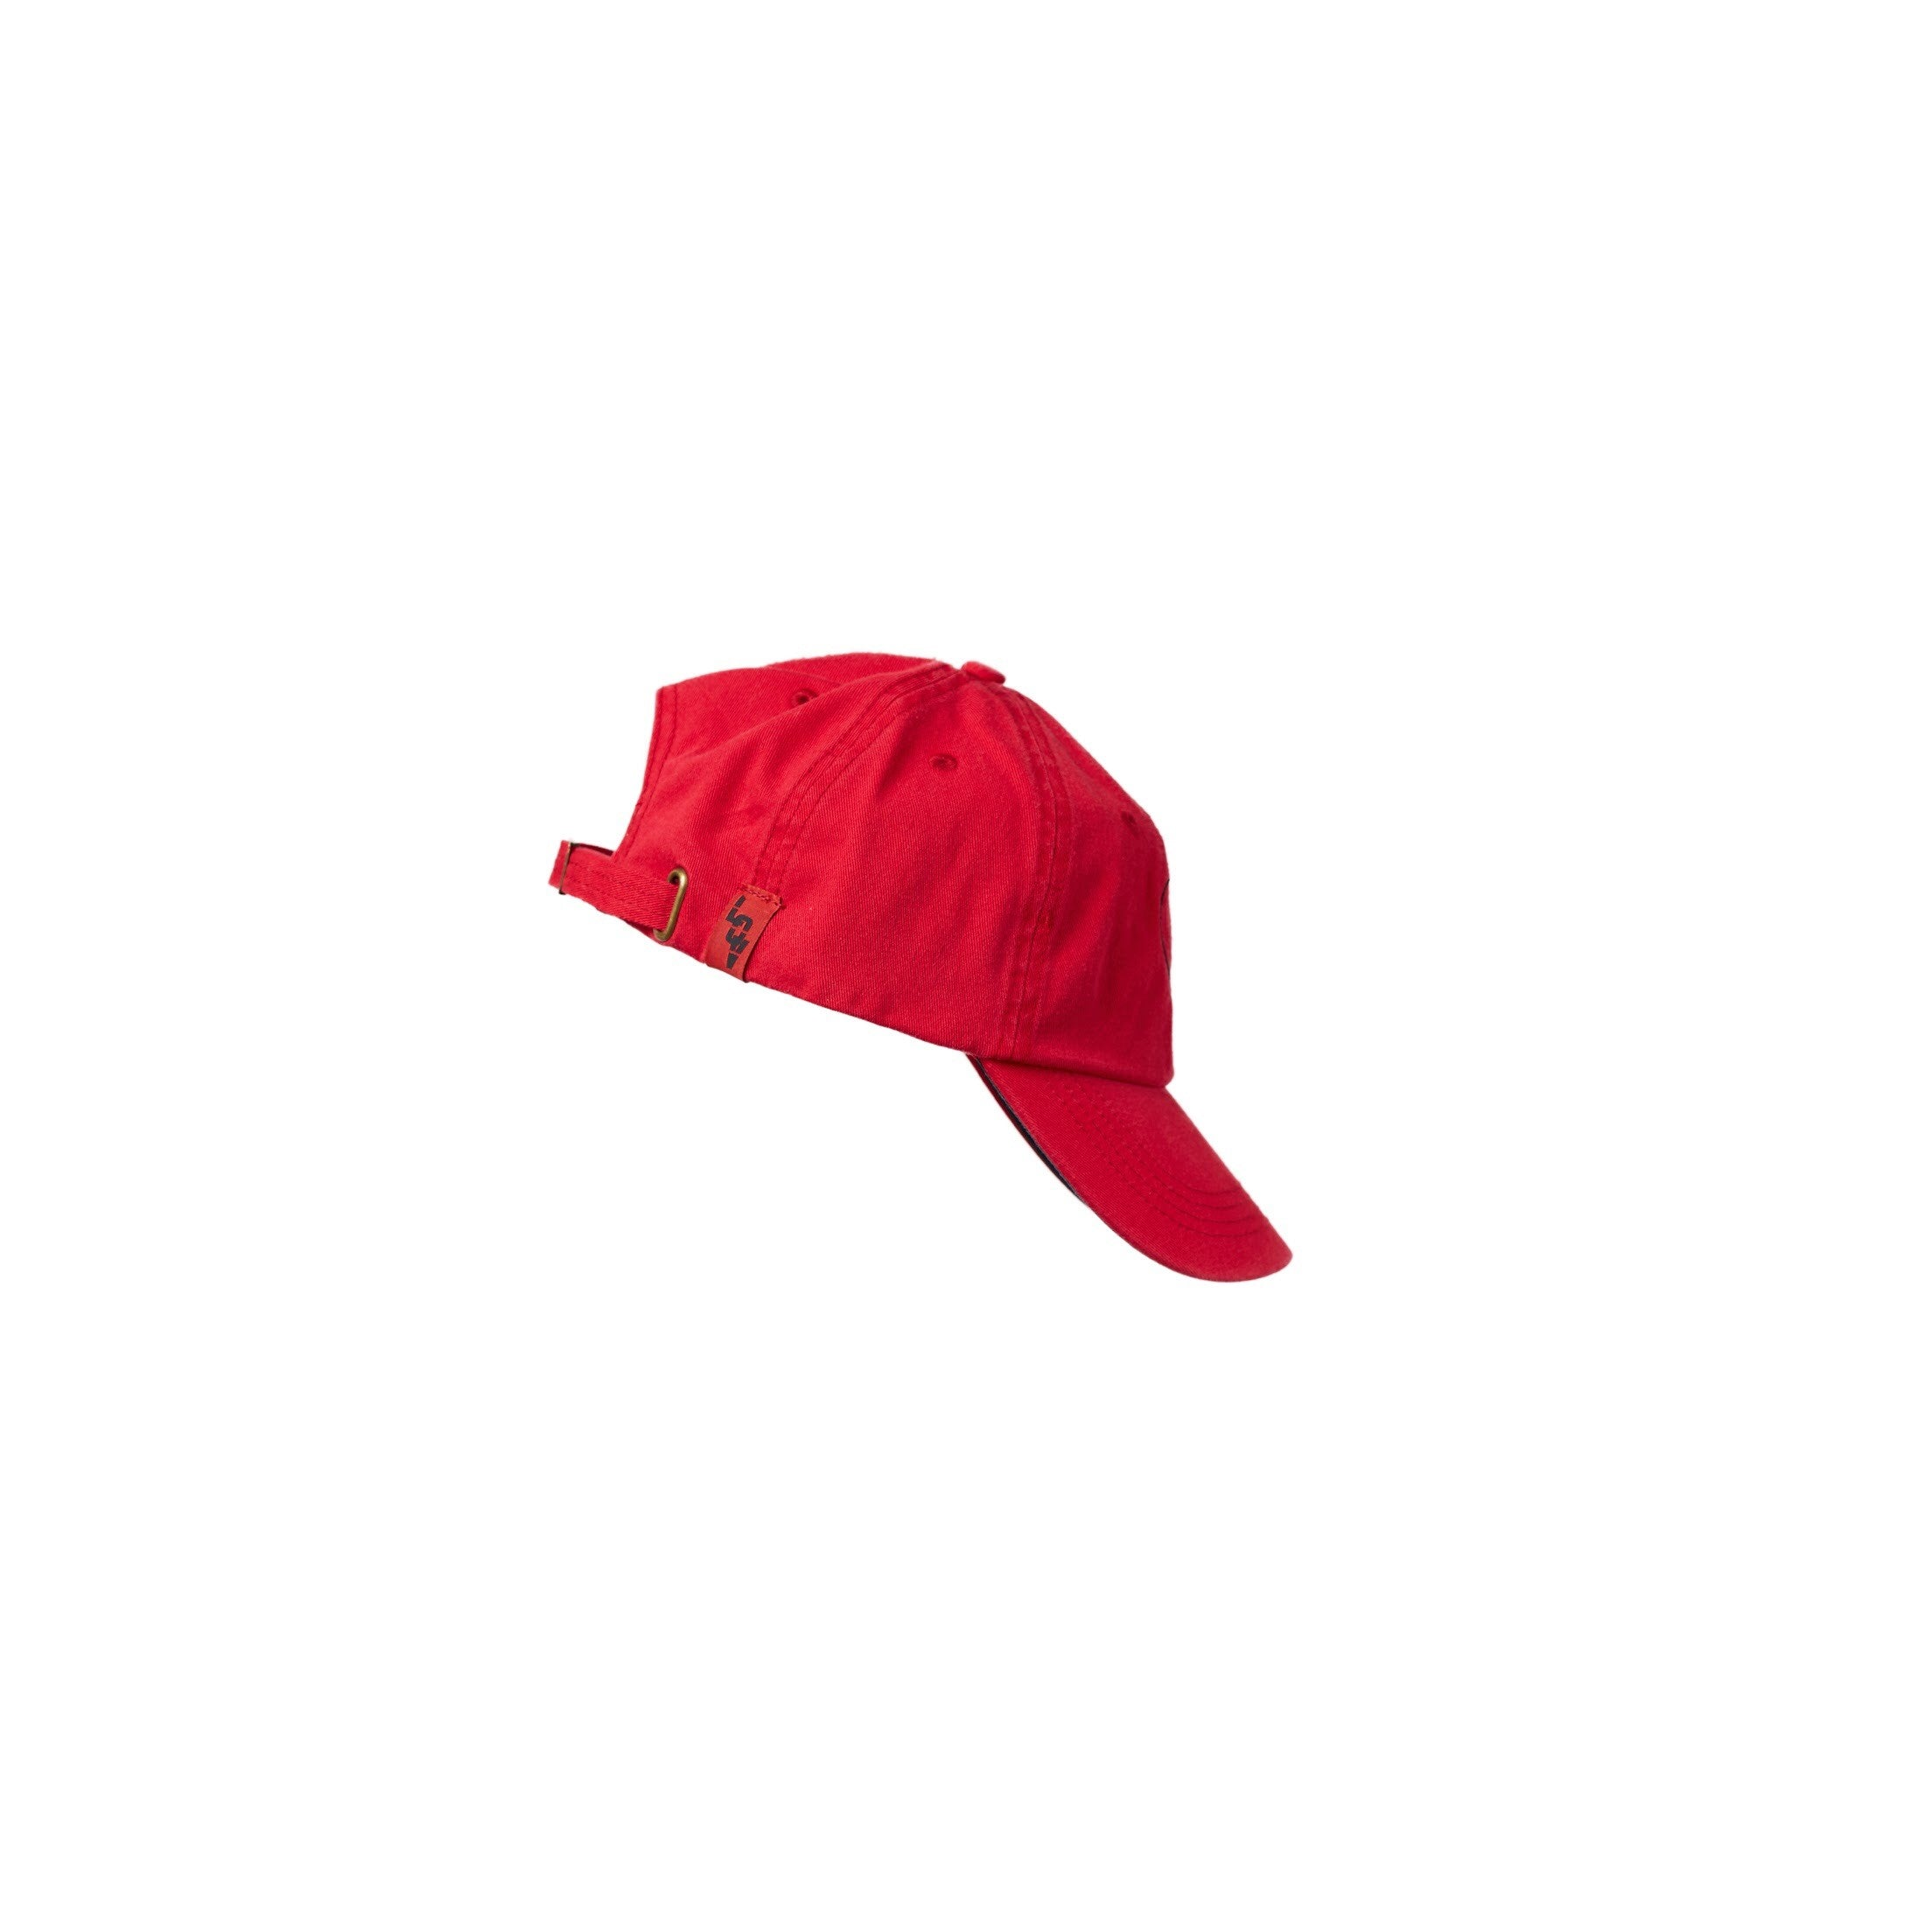 Side view of a red hat